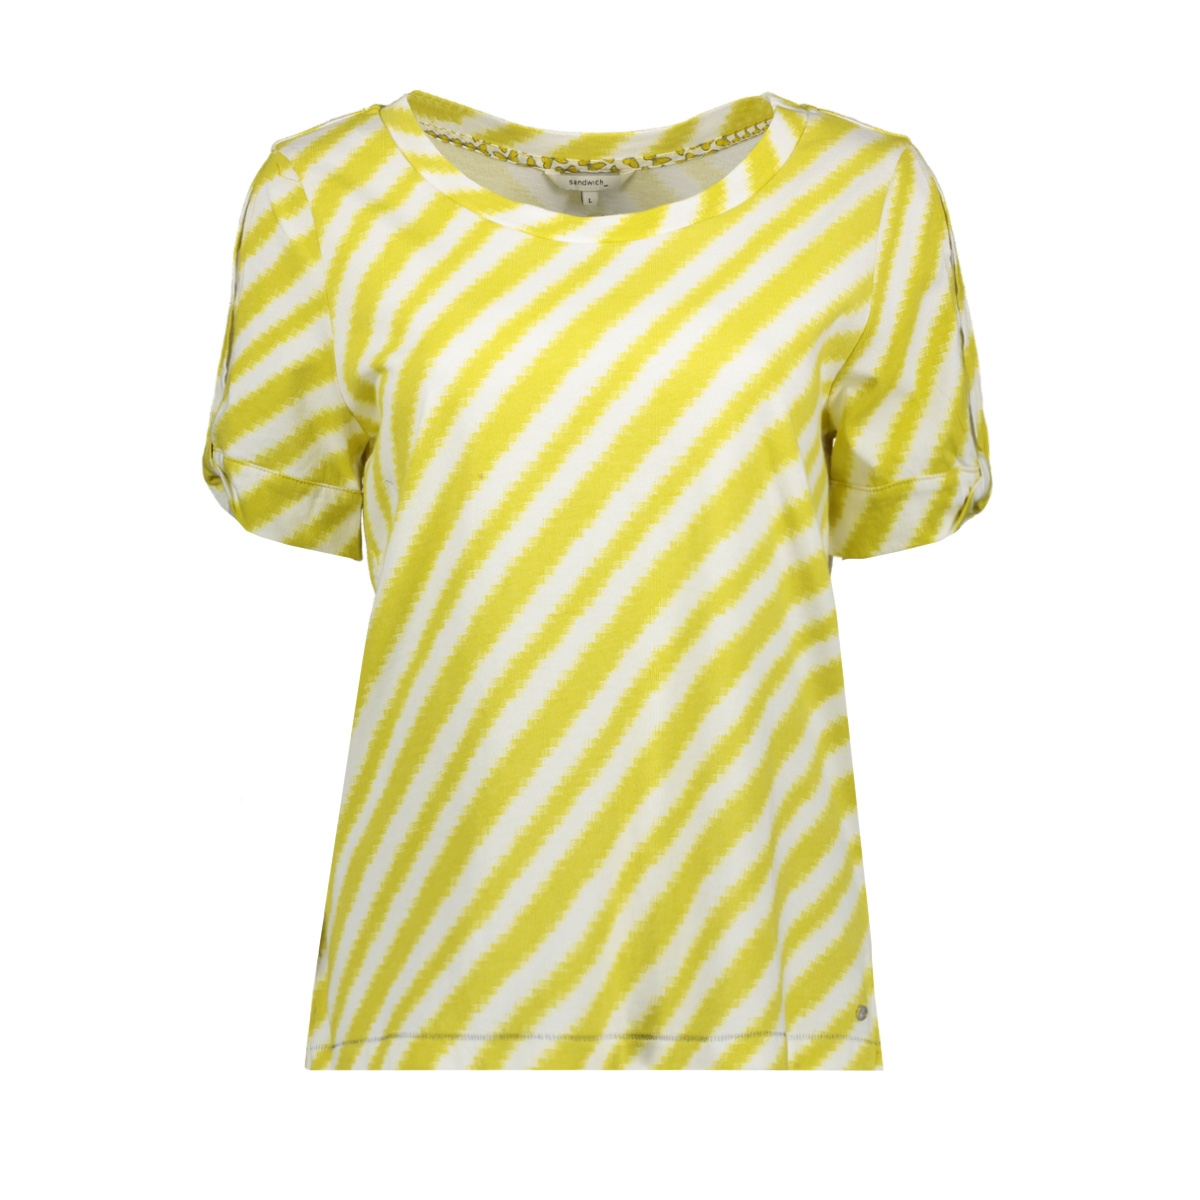 t shirt met open mouw 21101517 sandwich t-shirt 50102